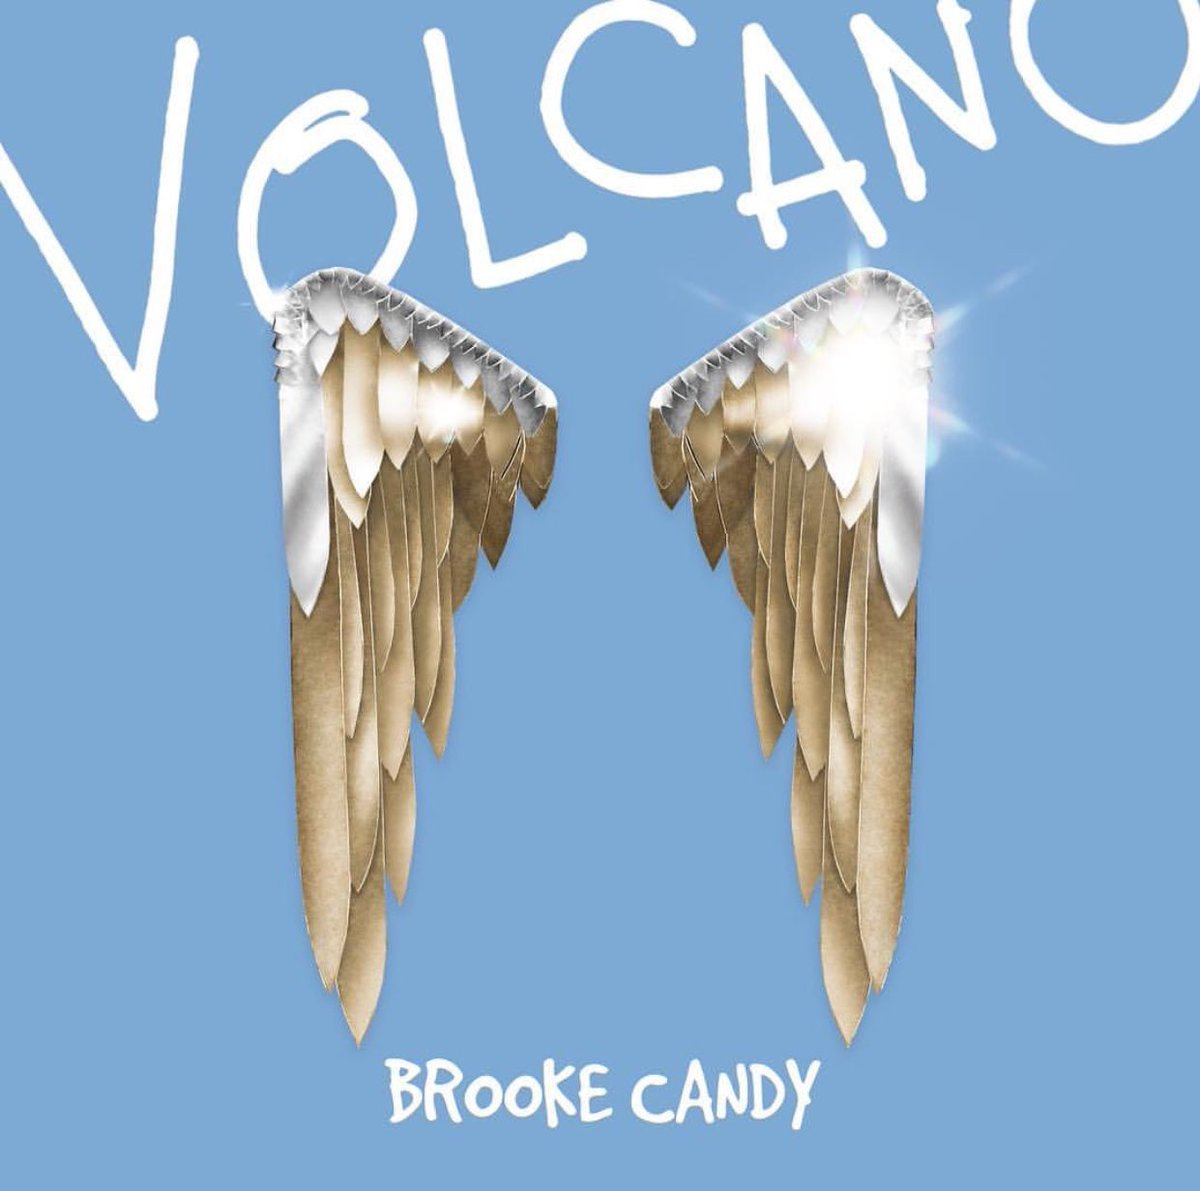 Brooke Candy Volcano